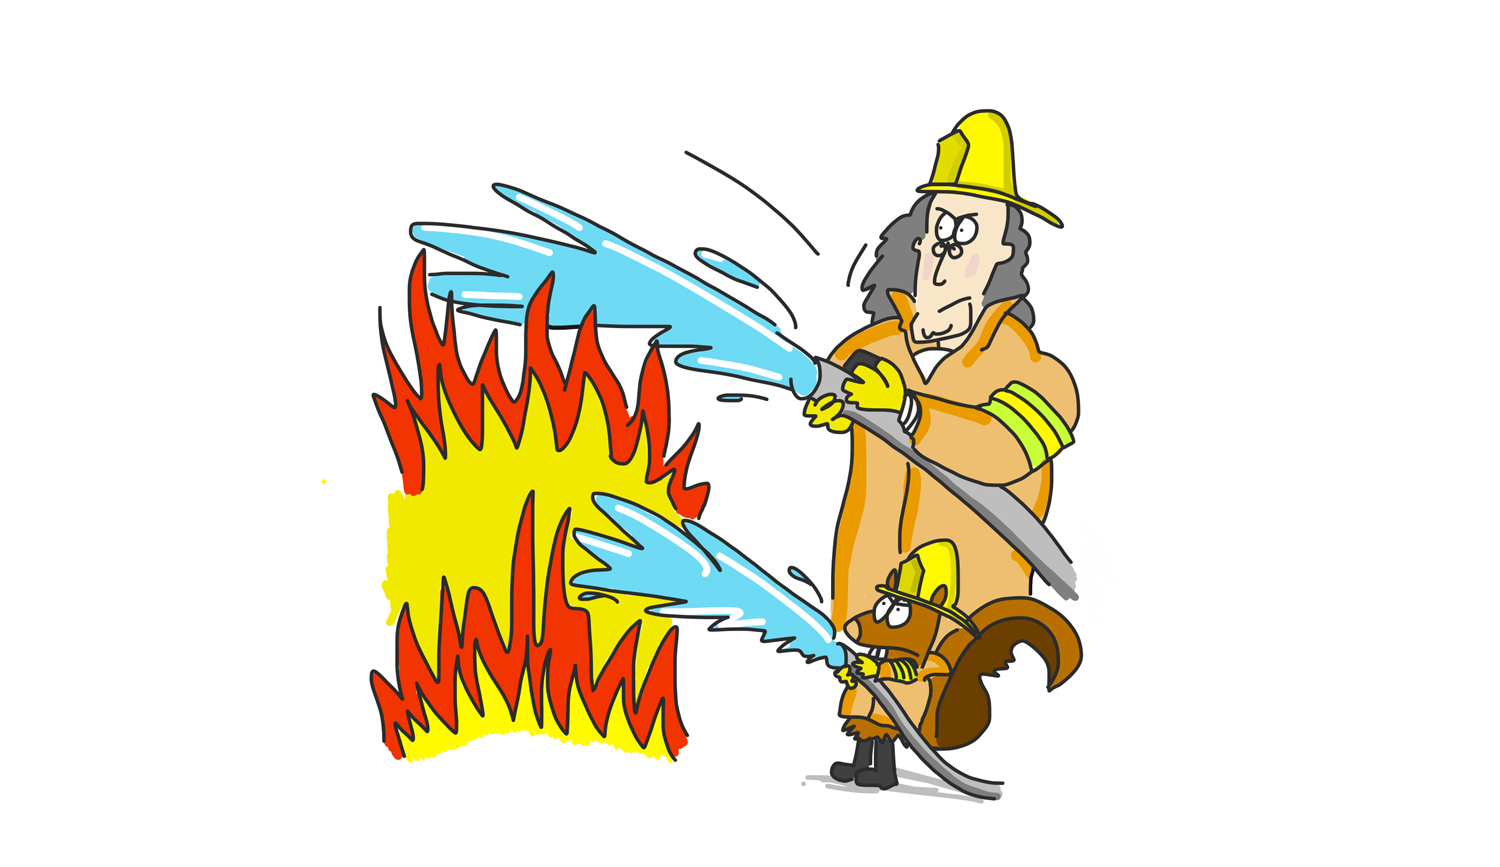 Benjamin Franklin as a firefighter